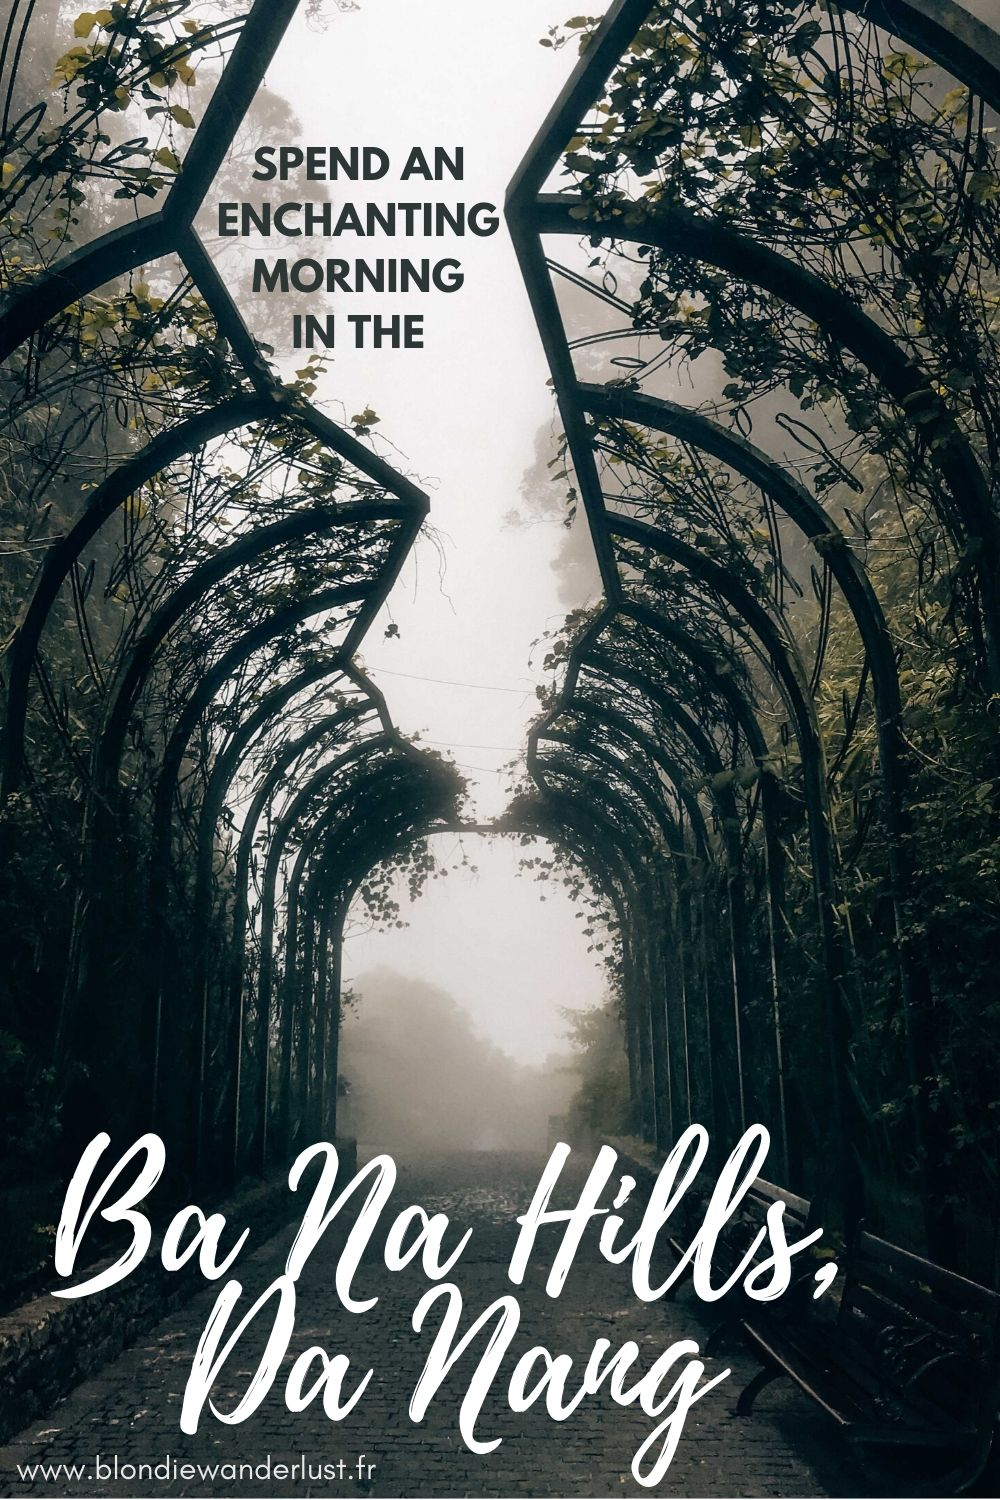 Spend an enchanting morning in the Ba Na Hills, Da Nang